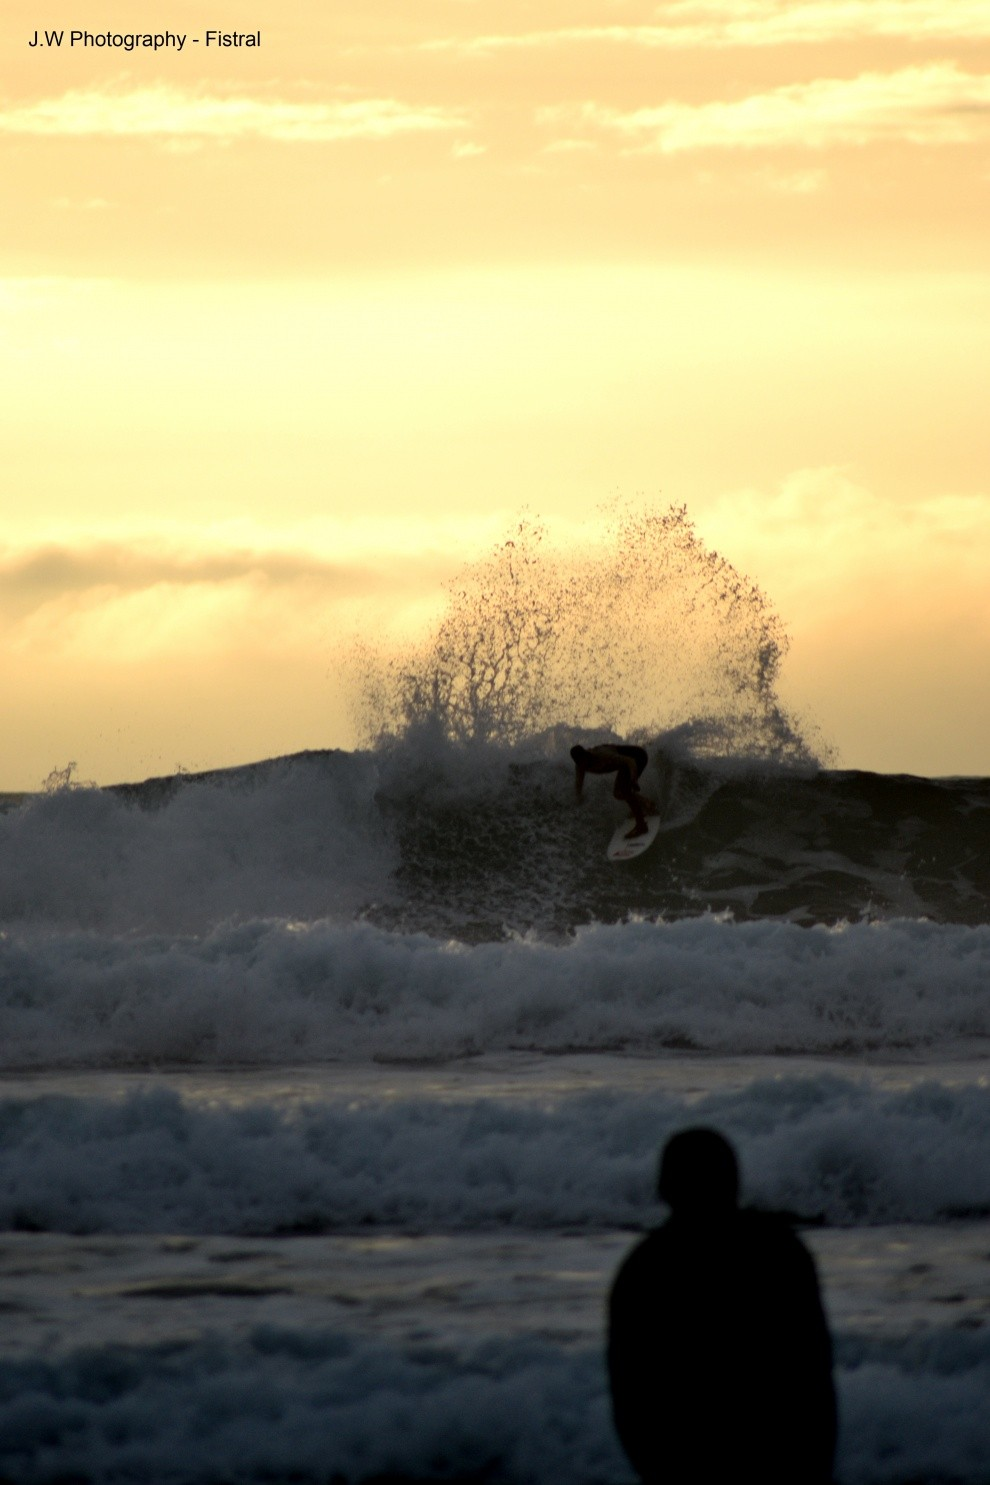 Joefuno's photo of Newquay - Fistral South